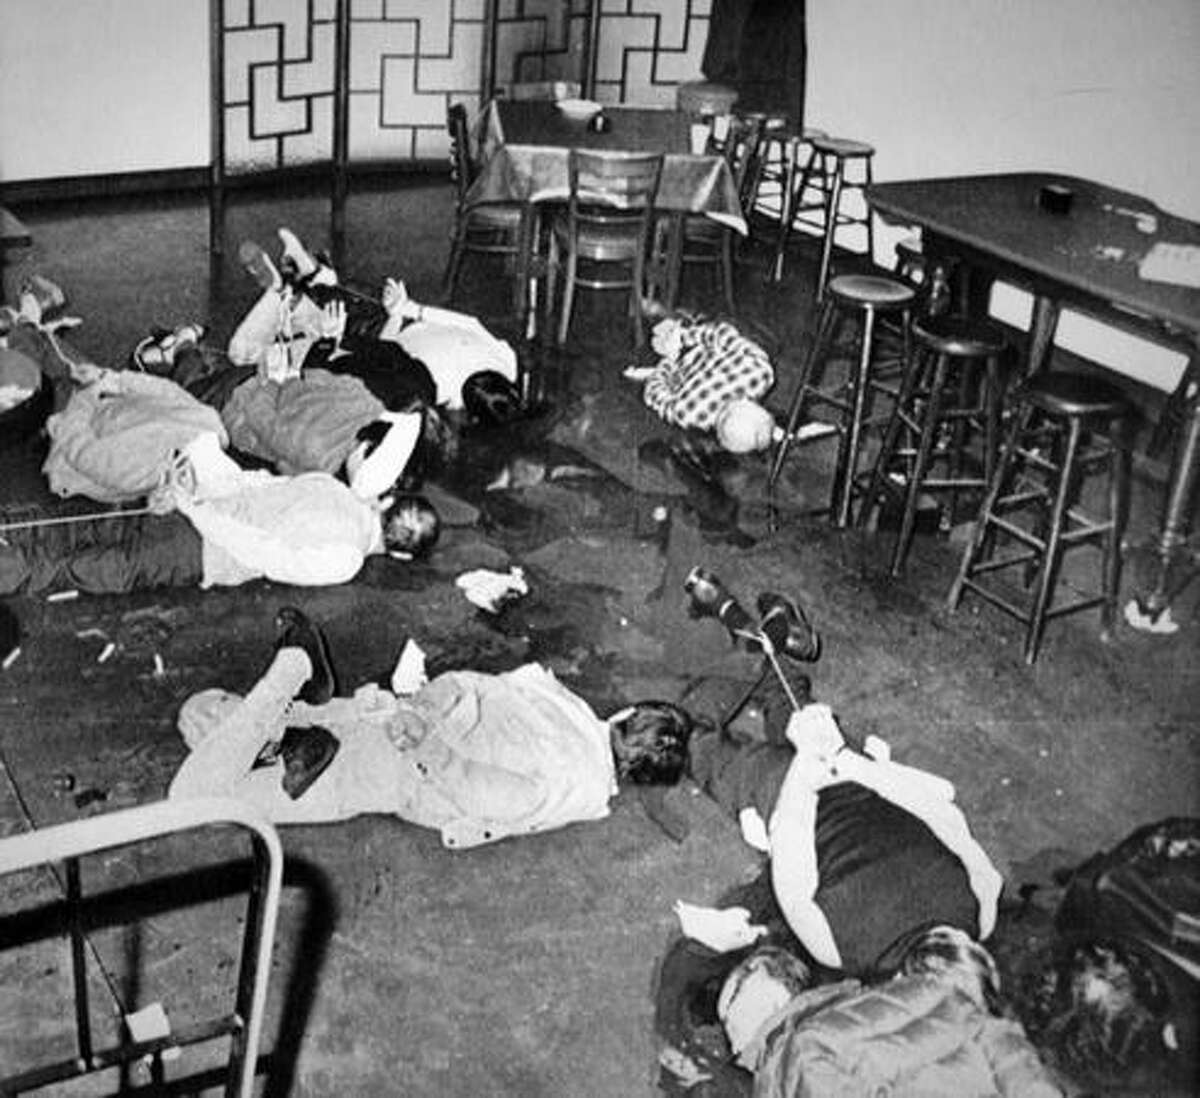 A police photo of the inside of the Wah Mee gambling club, where 12 men and one woman were killed during a robbery February 1983.